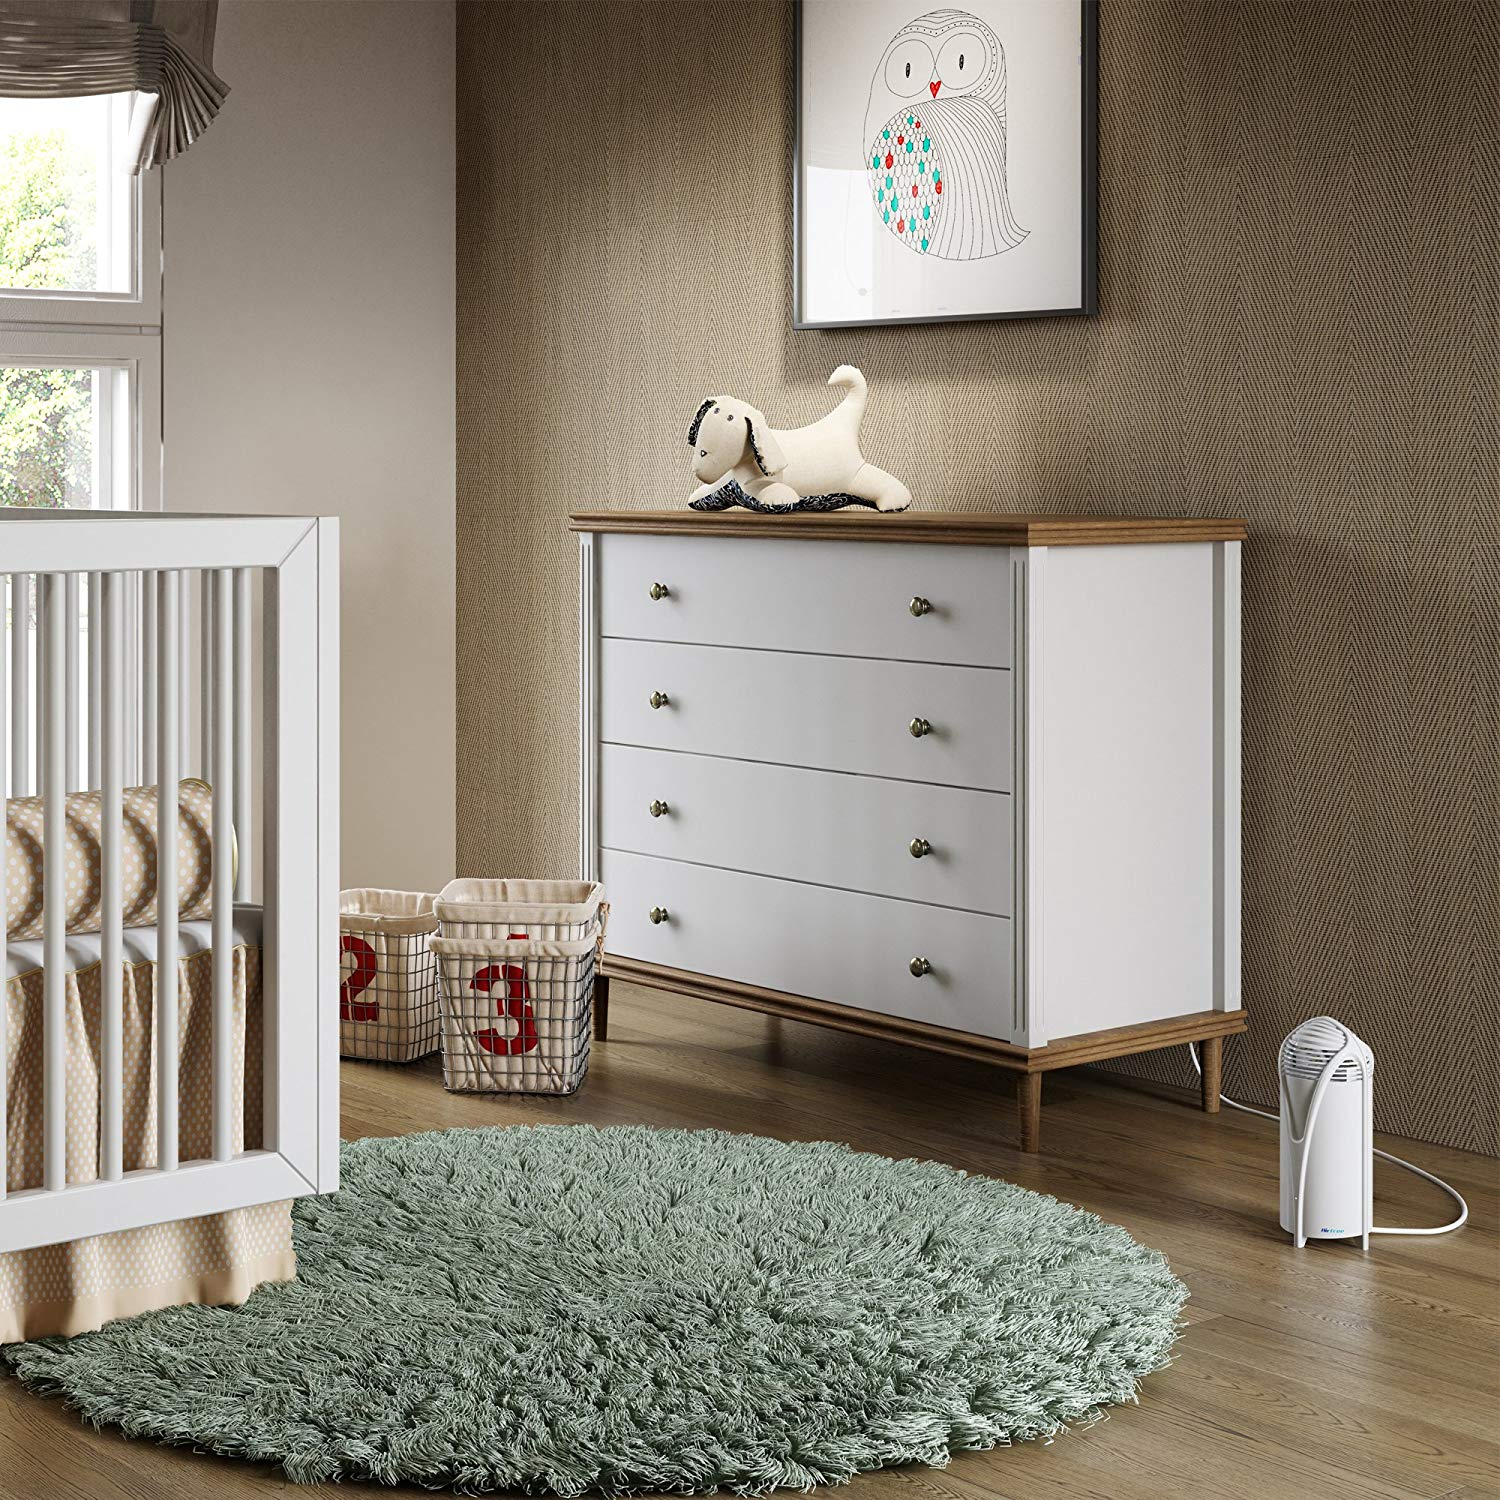 Best Filterless Air Purifier - #2 Airfree T800 in a Baby's Nursery